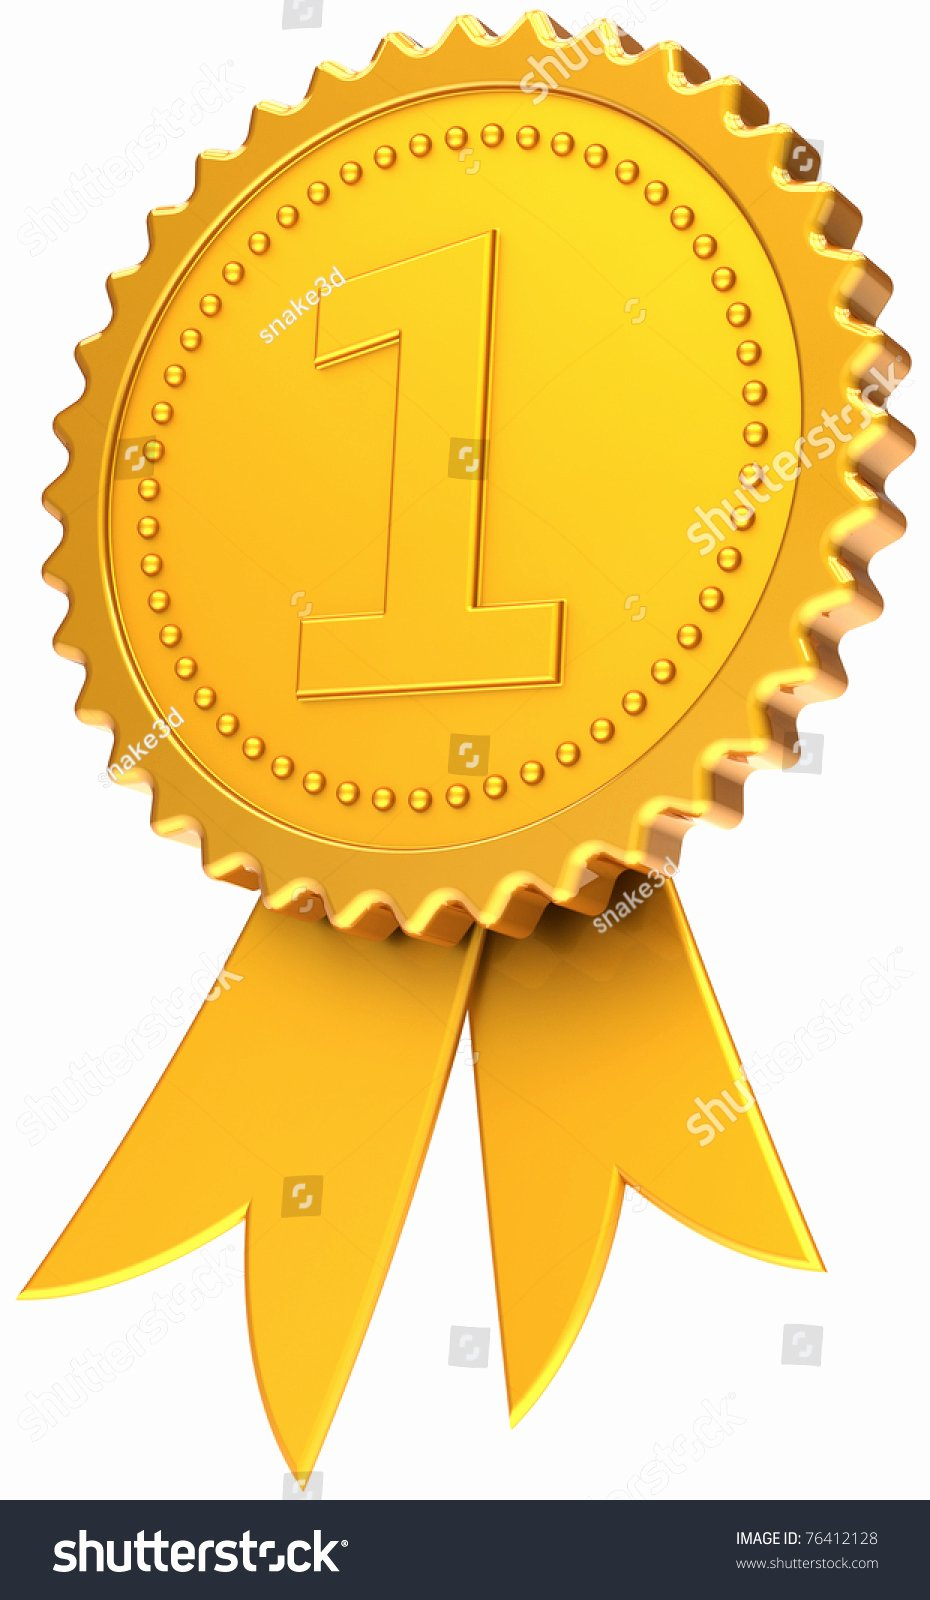 1st Place Ribbon Template Awesome First Place Golden Award Ribbon Number E Champion Medal